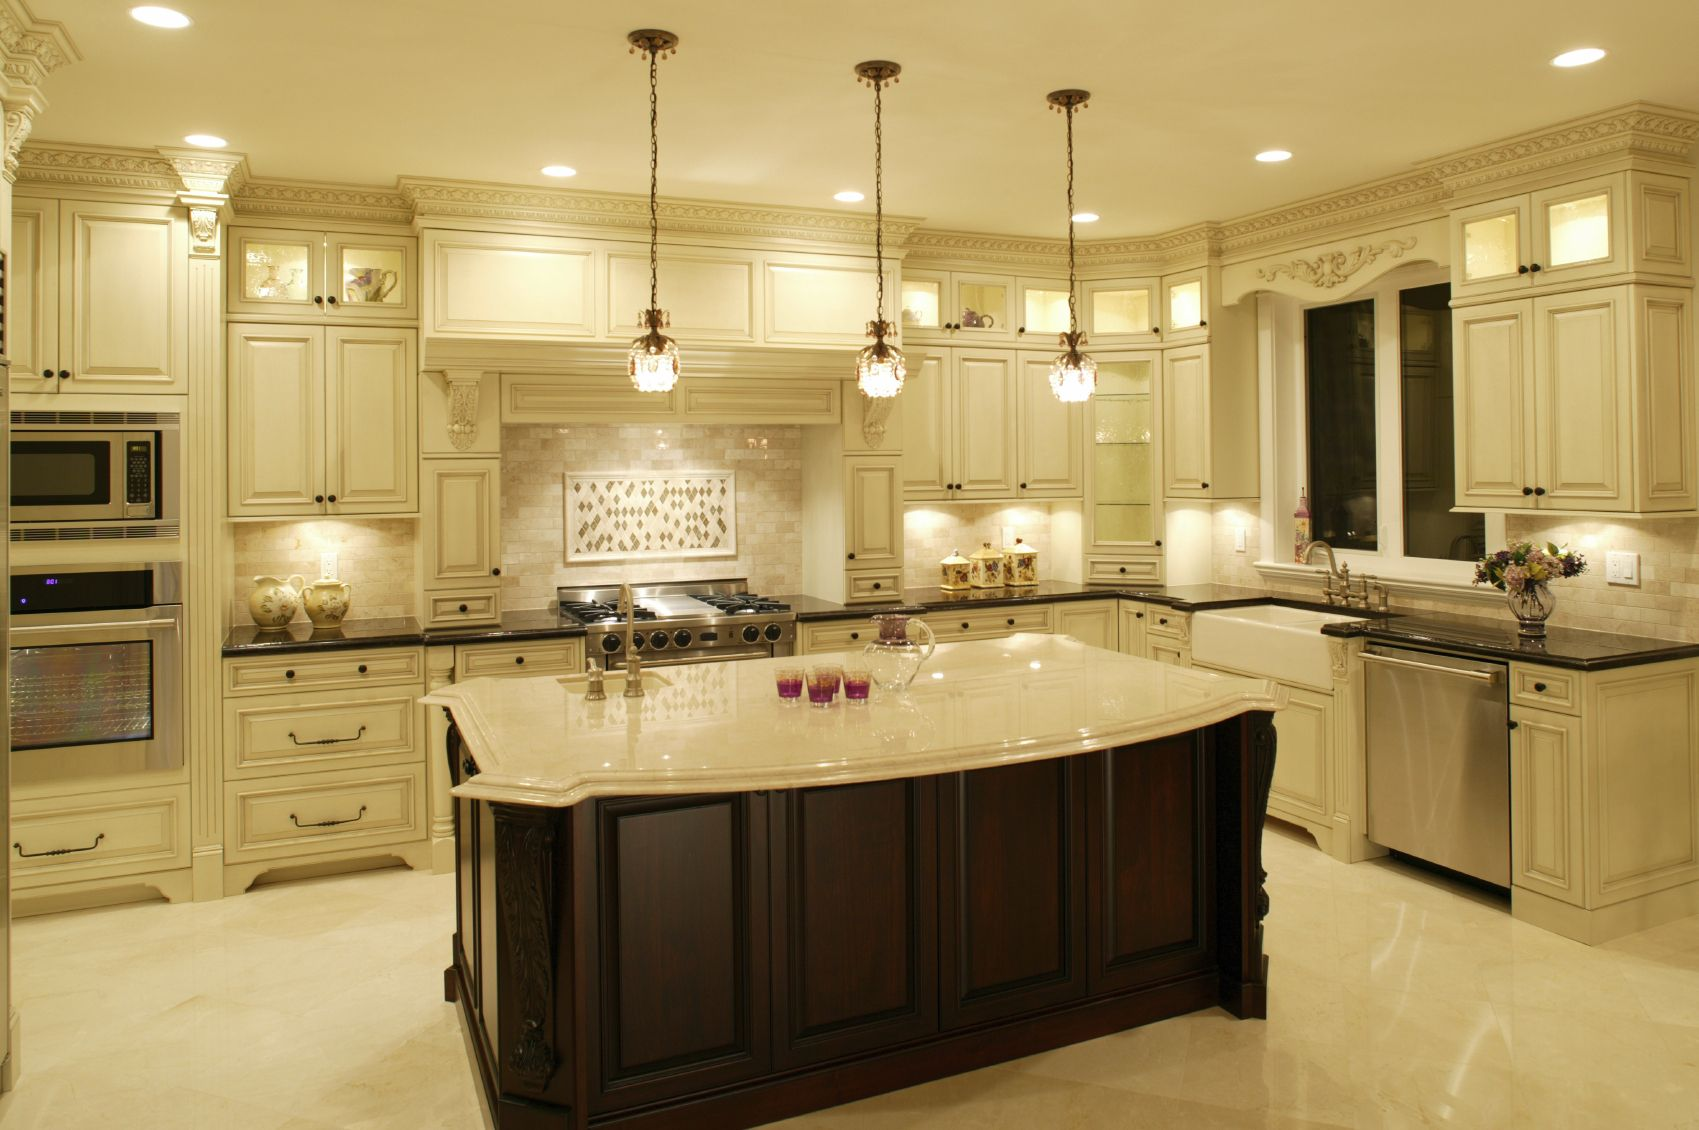 124 Custom Luxury Kitchen Designs Part 1 Dark Wood. Long Kitchen Island Ideas. Kchen Island Long Kchen Island Table Whe Long Modern. Long Narrow Kitchen Designs Posted On April 20 2013 By